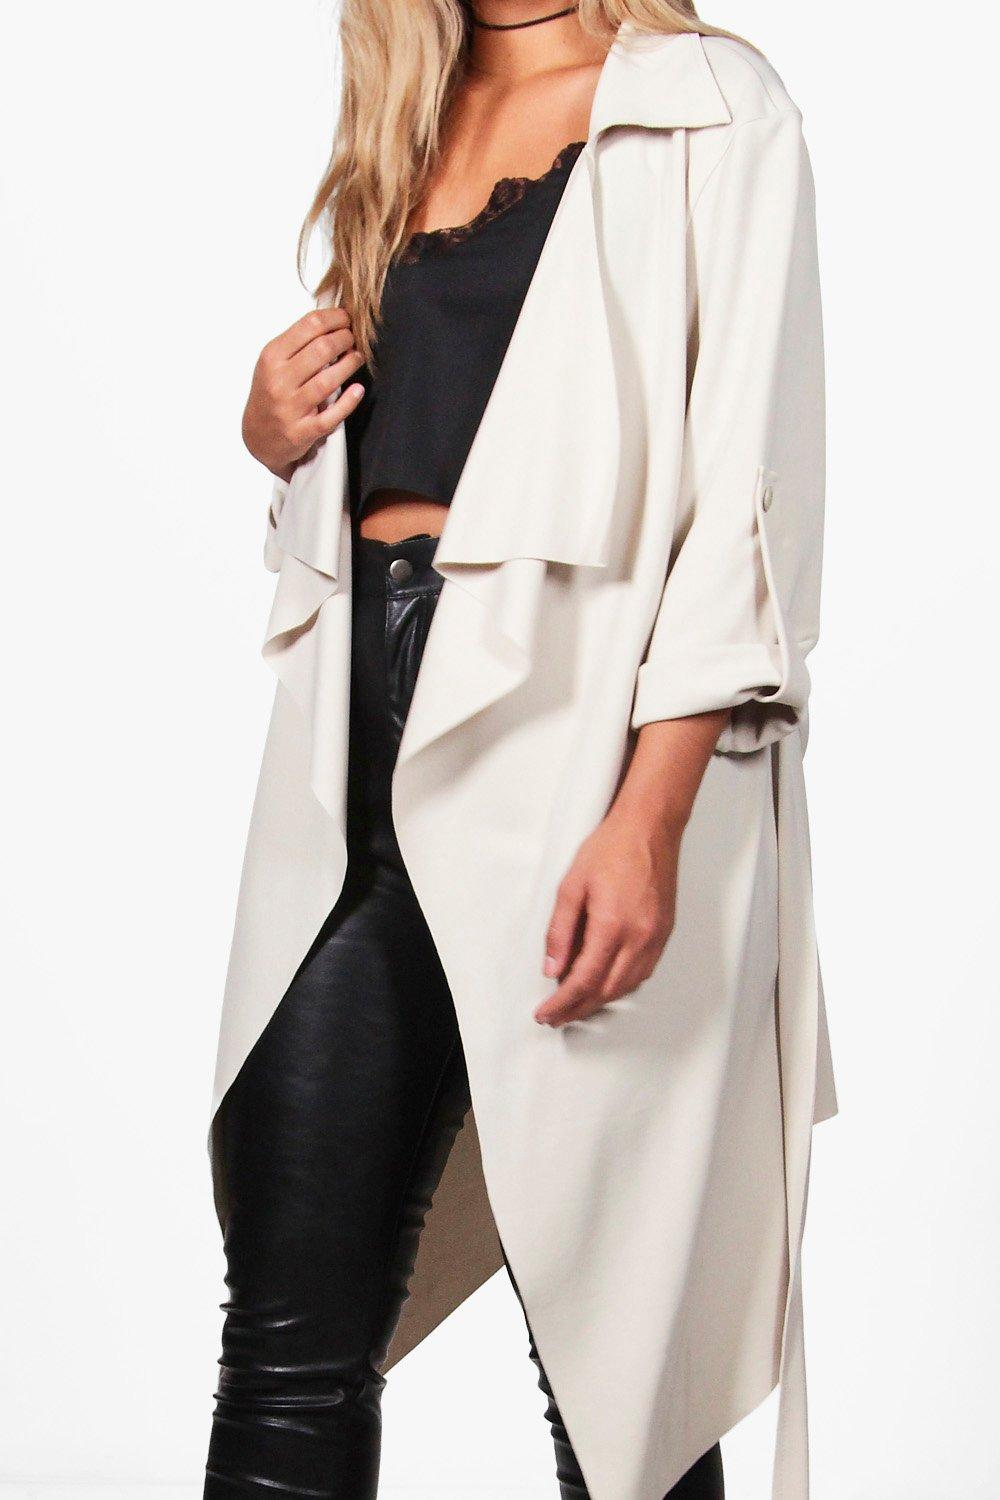 Waterfall stone Coat Plus Belted Daisy Duster 64c4aFq